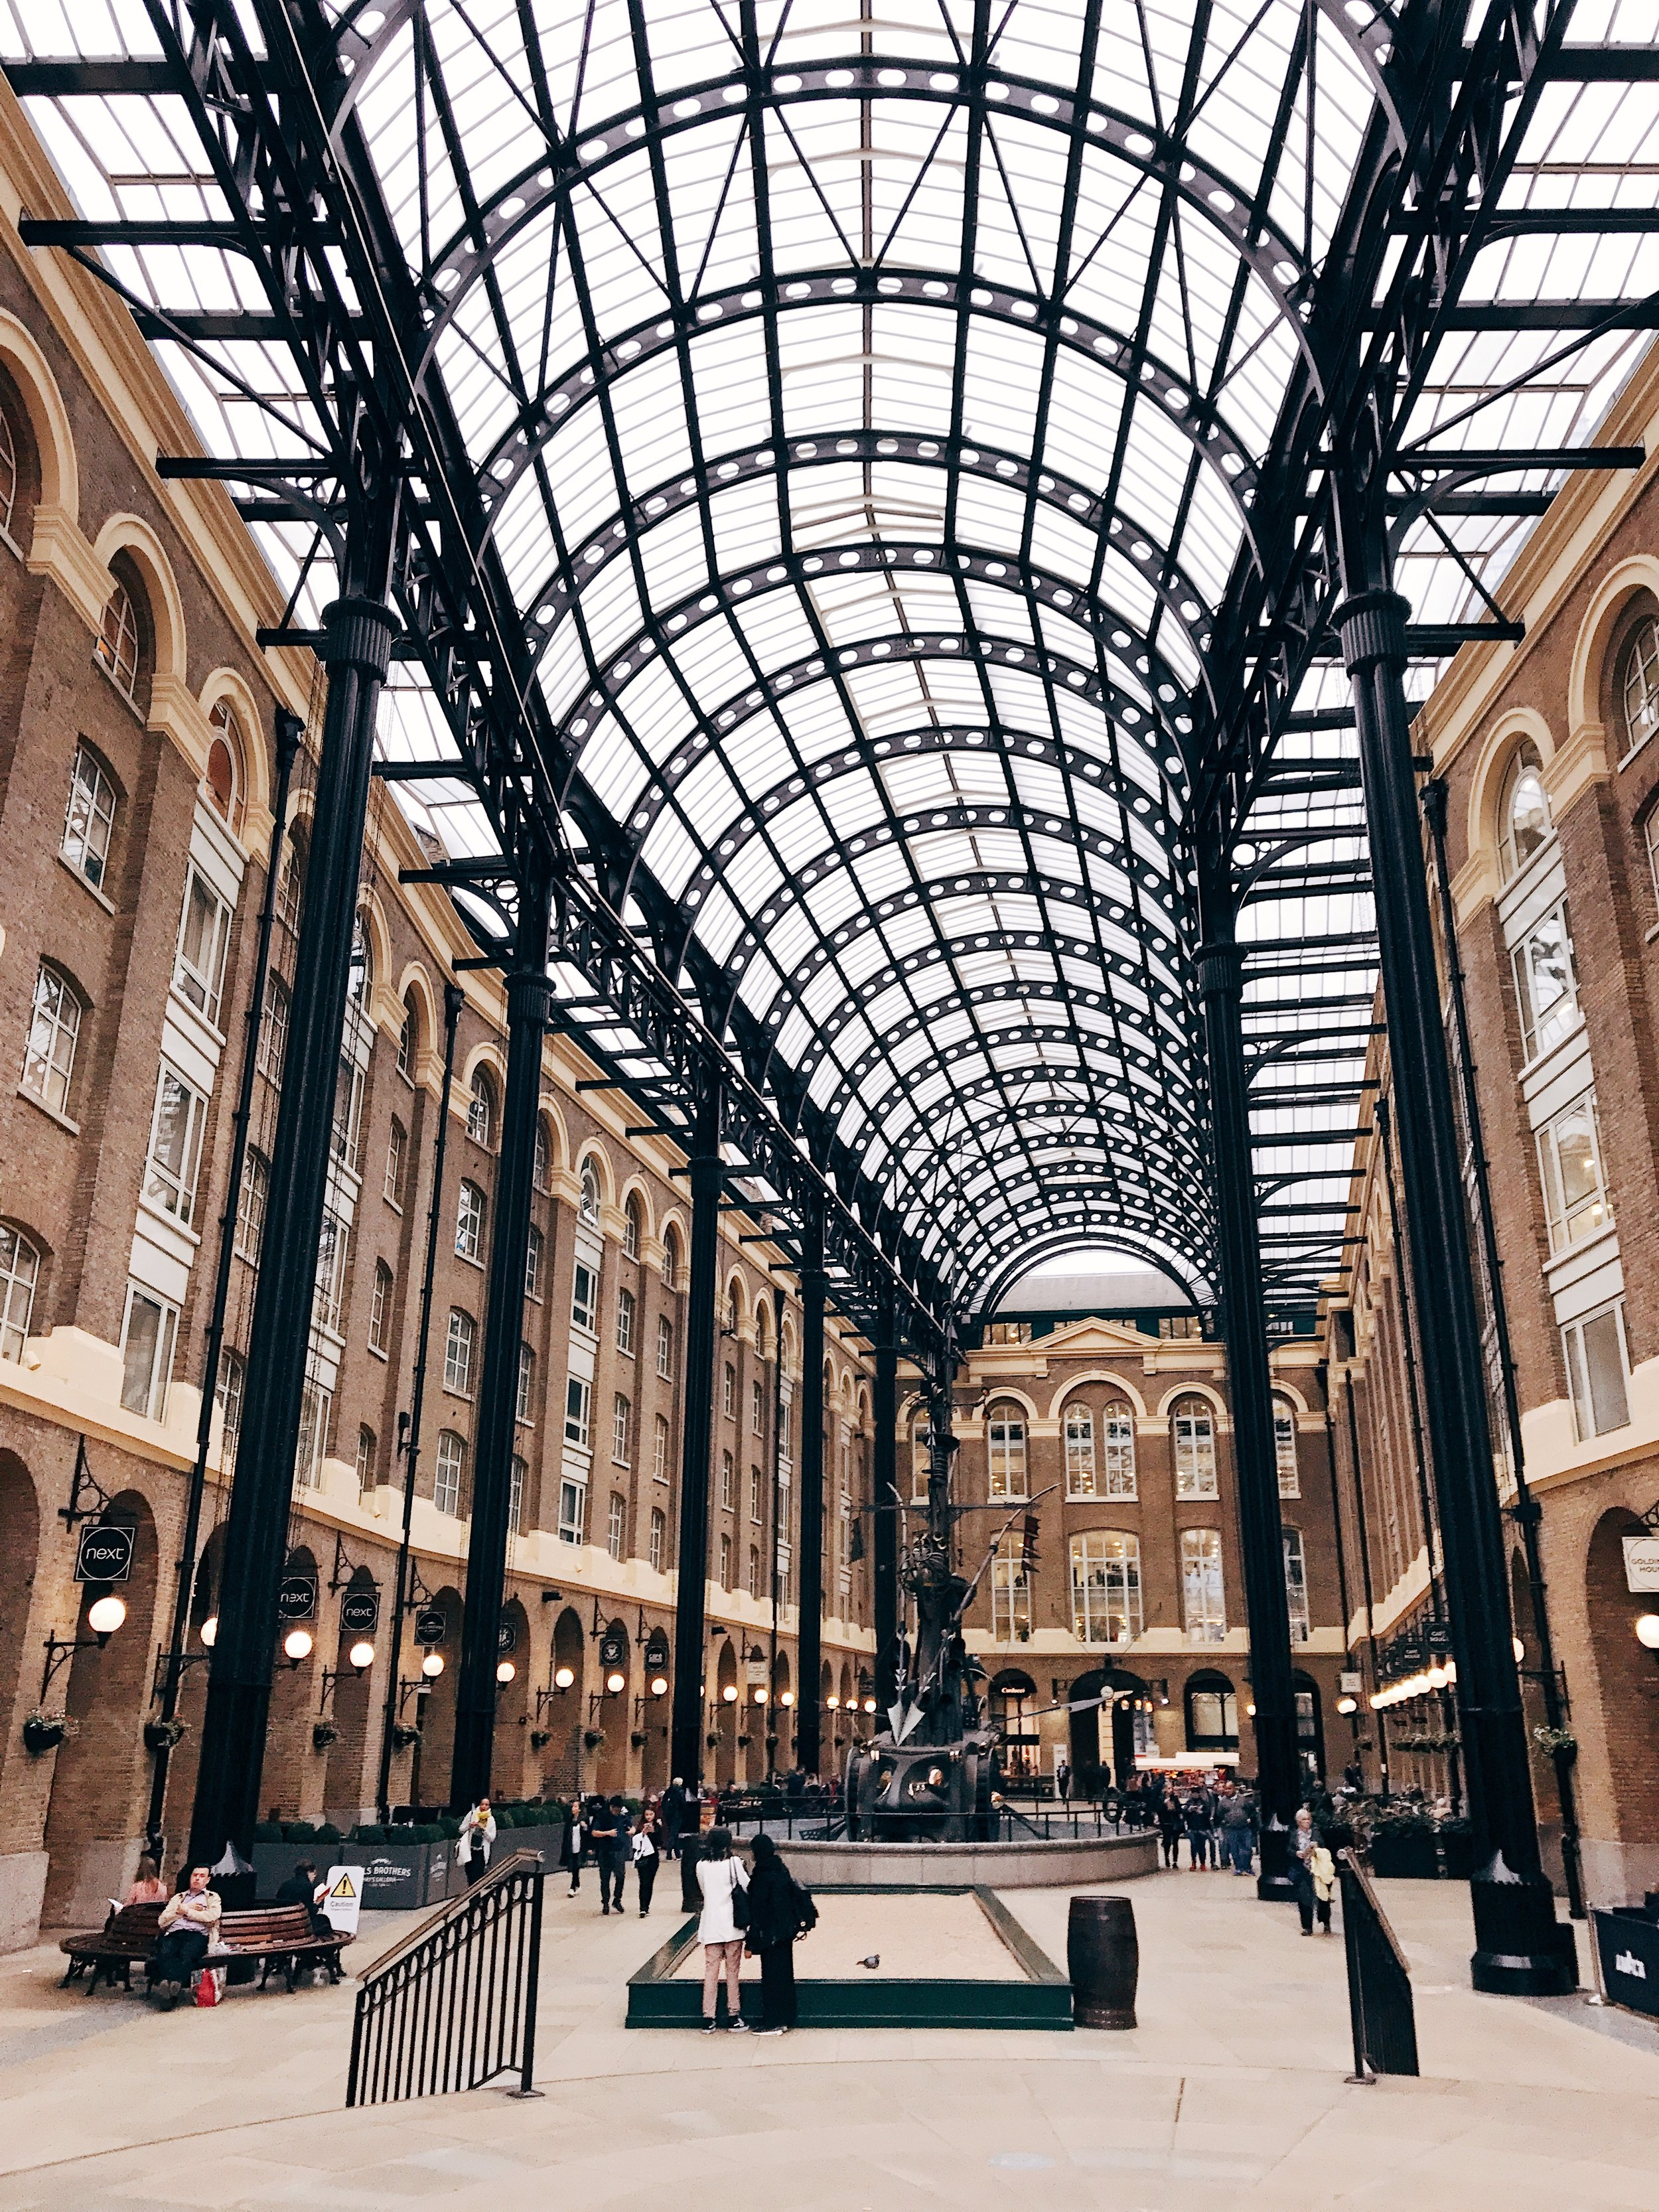 Image: Reasons to Visit London - Many Images to Inspire You to Visit London - Hay's Galleria